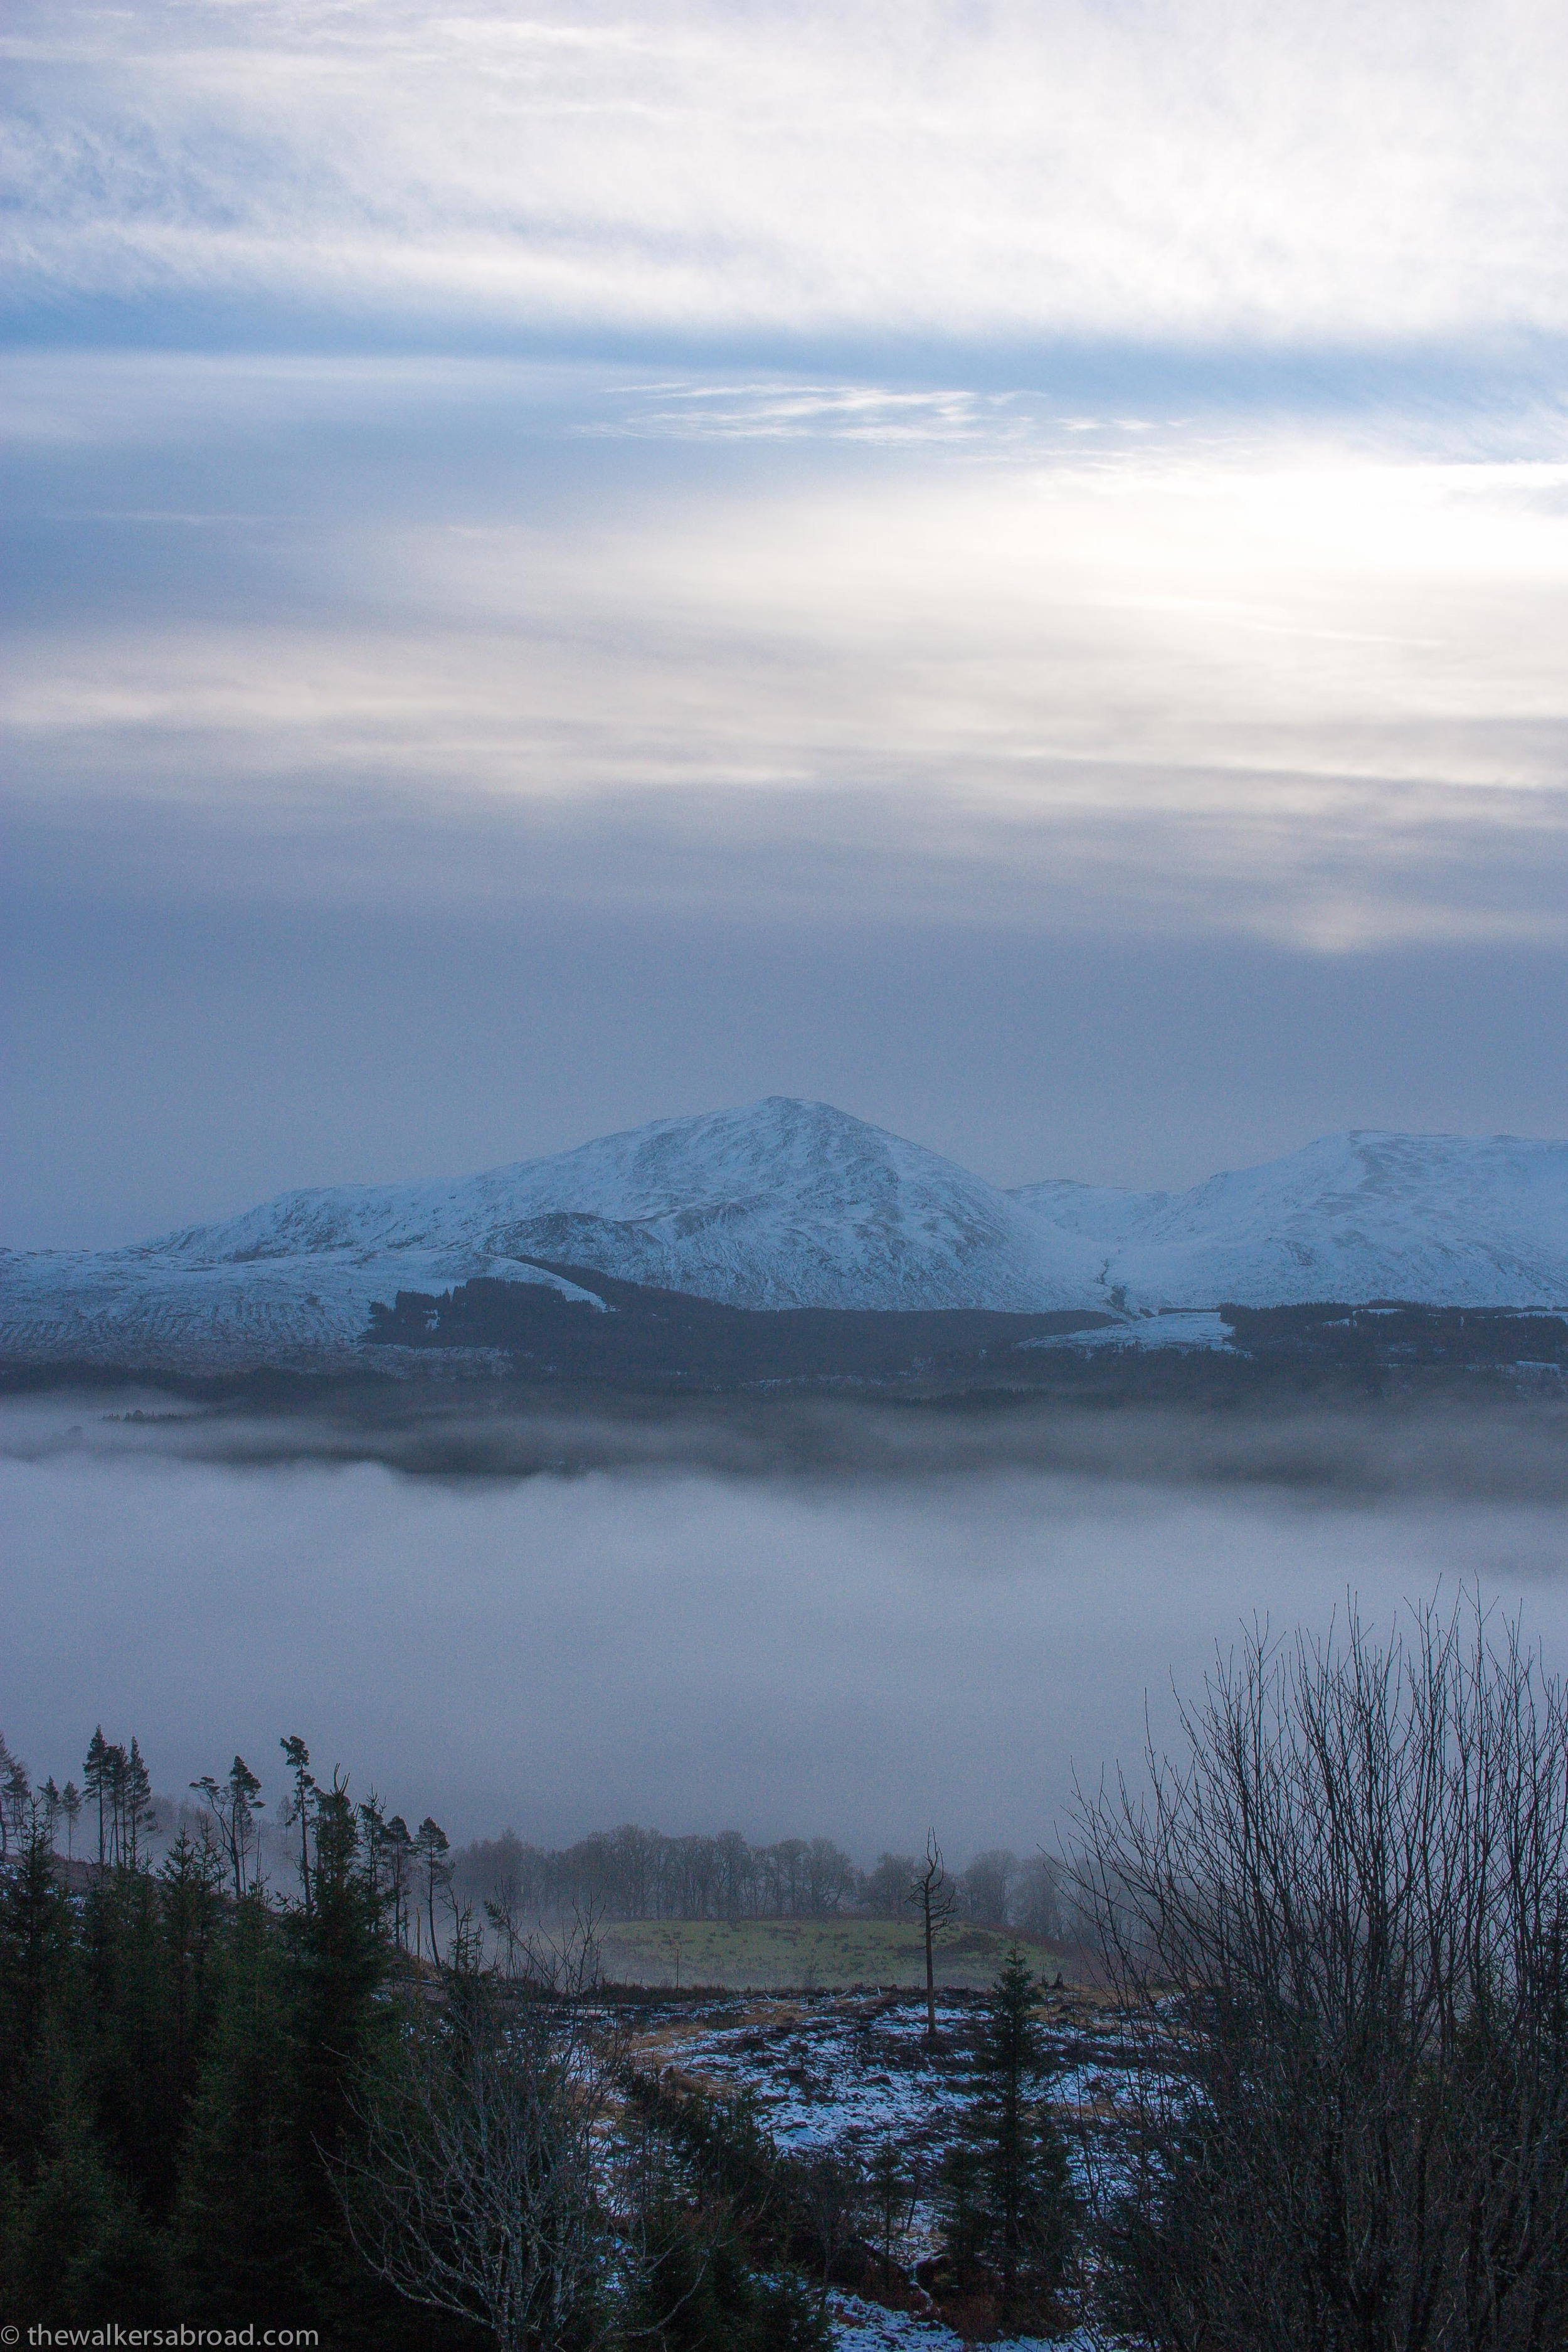 Beneath the fog is the River Garry or the beginnings of Loch Garry.